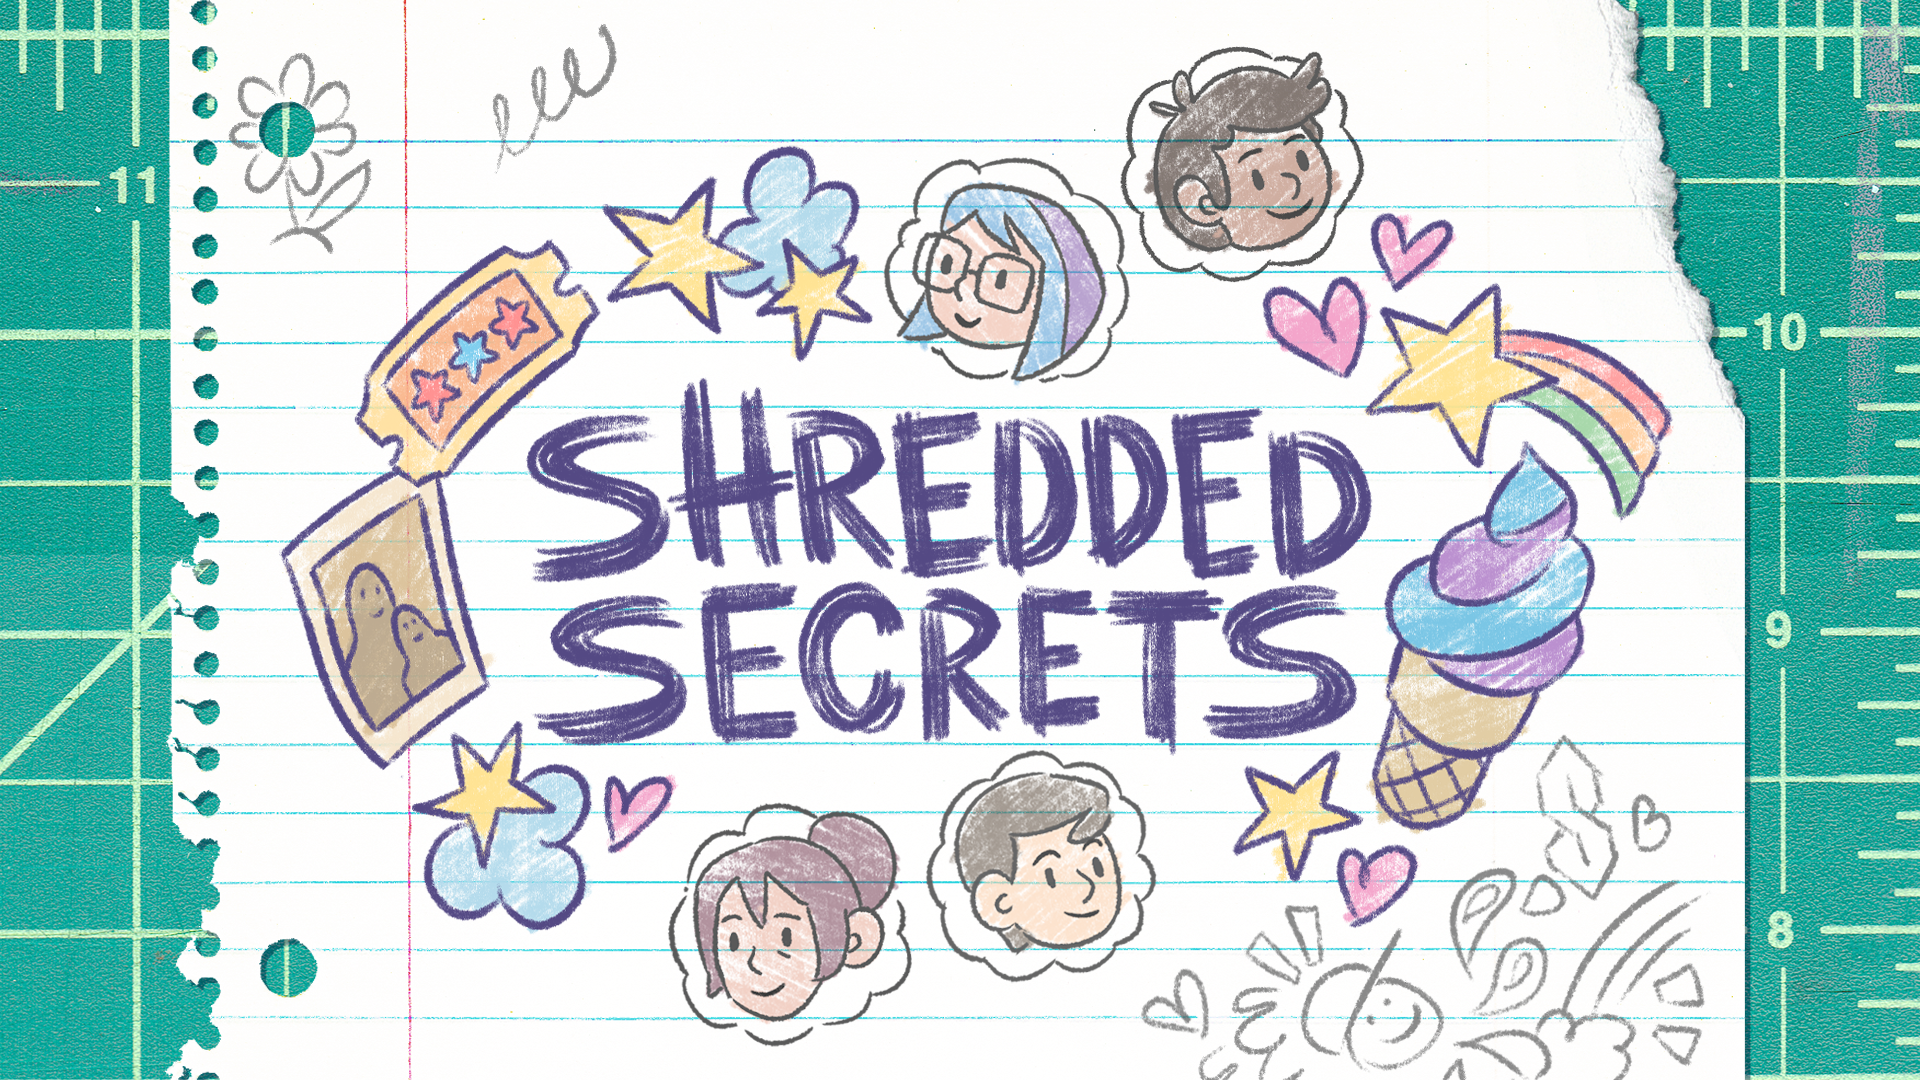 Shredded Secrets